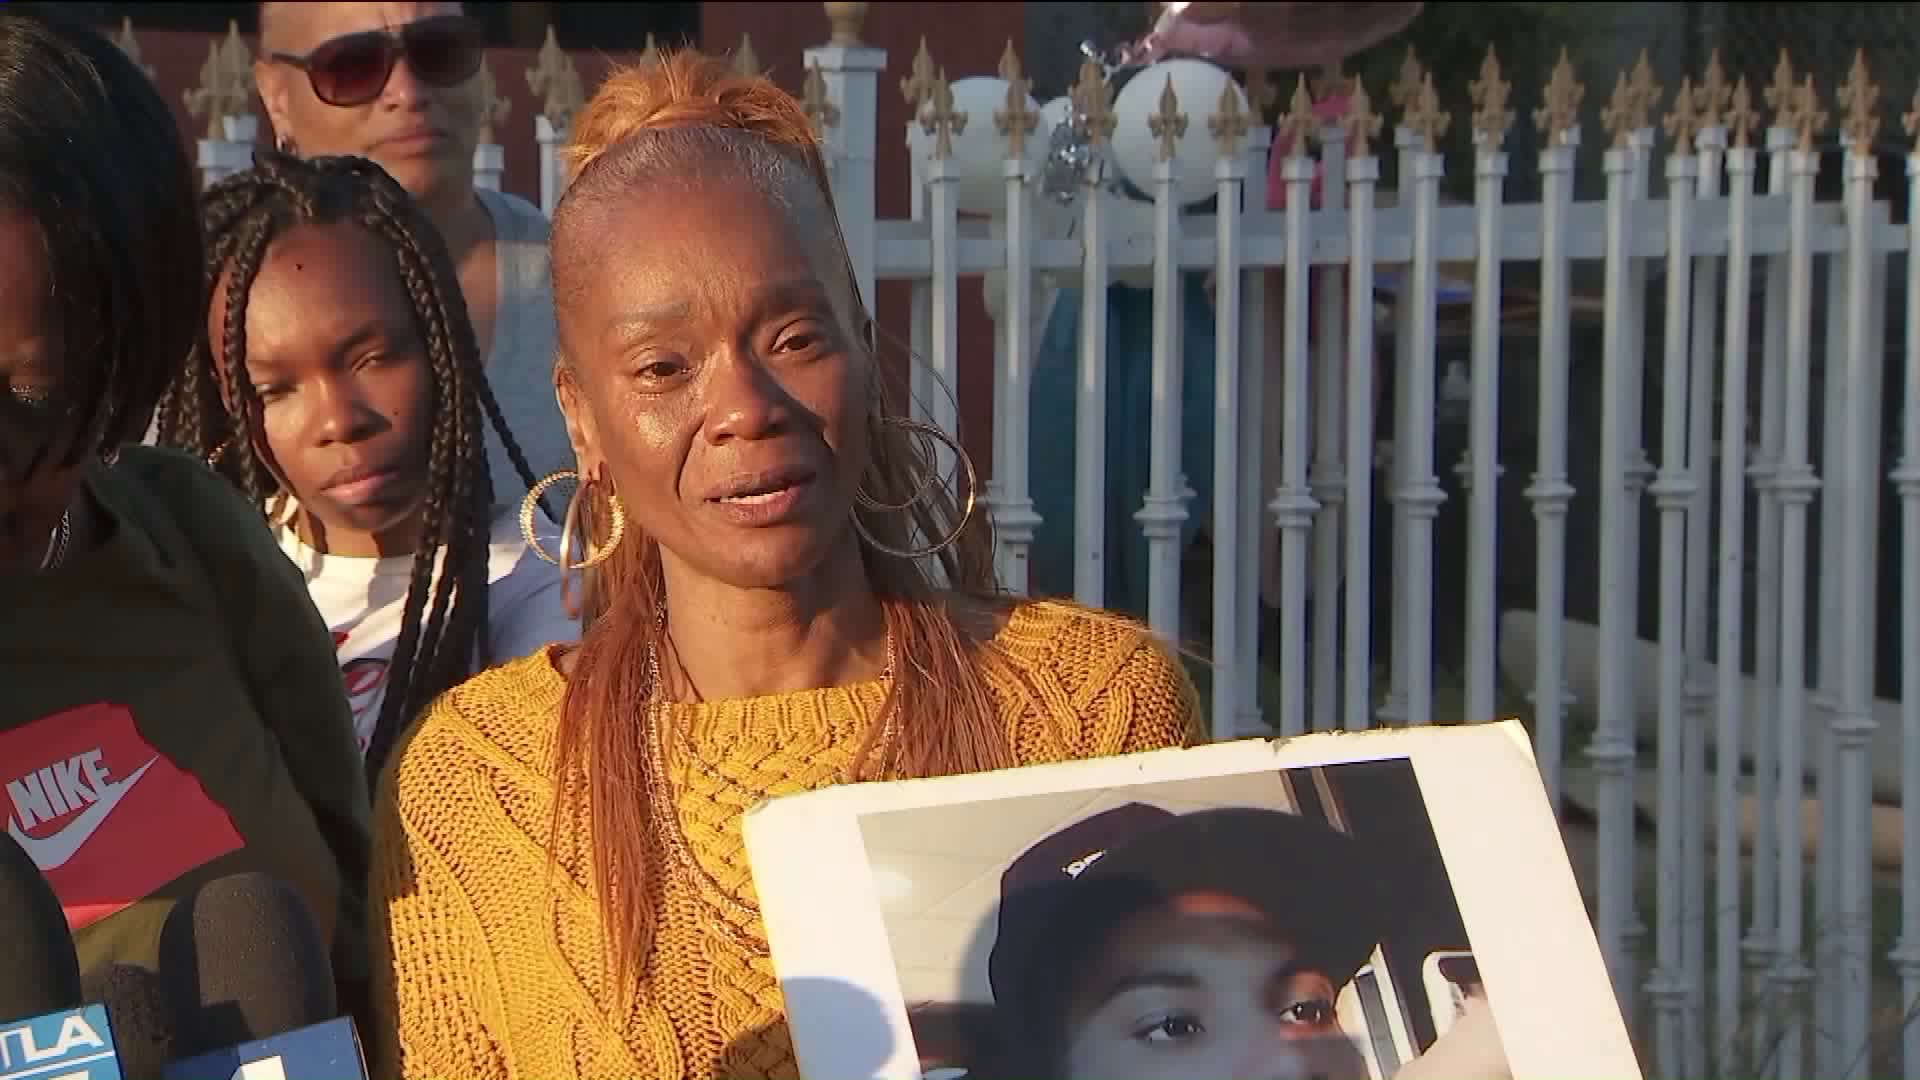 Vanessa Hawkins speaks at a vigil for her daughter, Micquel, who was shot and killed in South L.A. (Credit: KTLA)